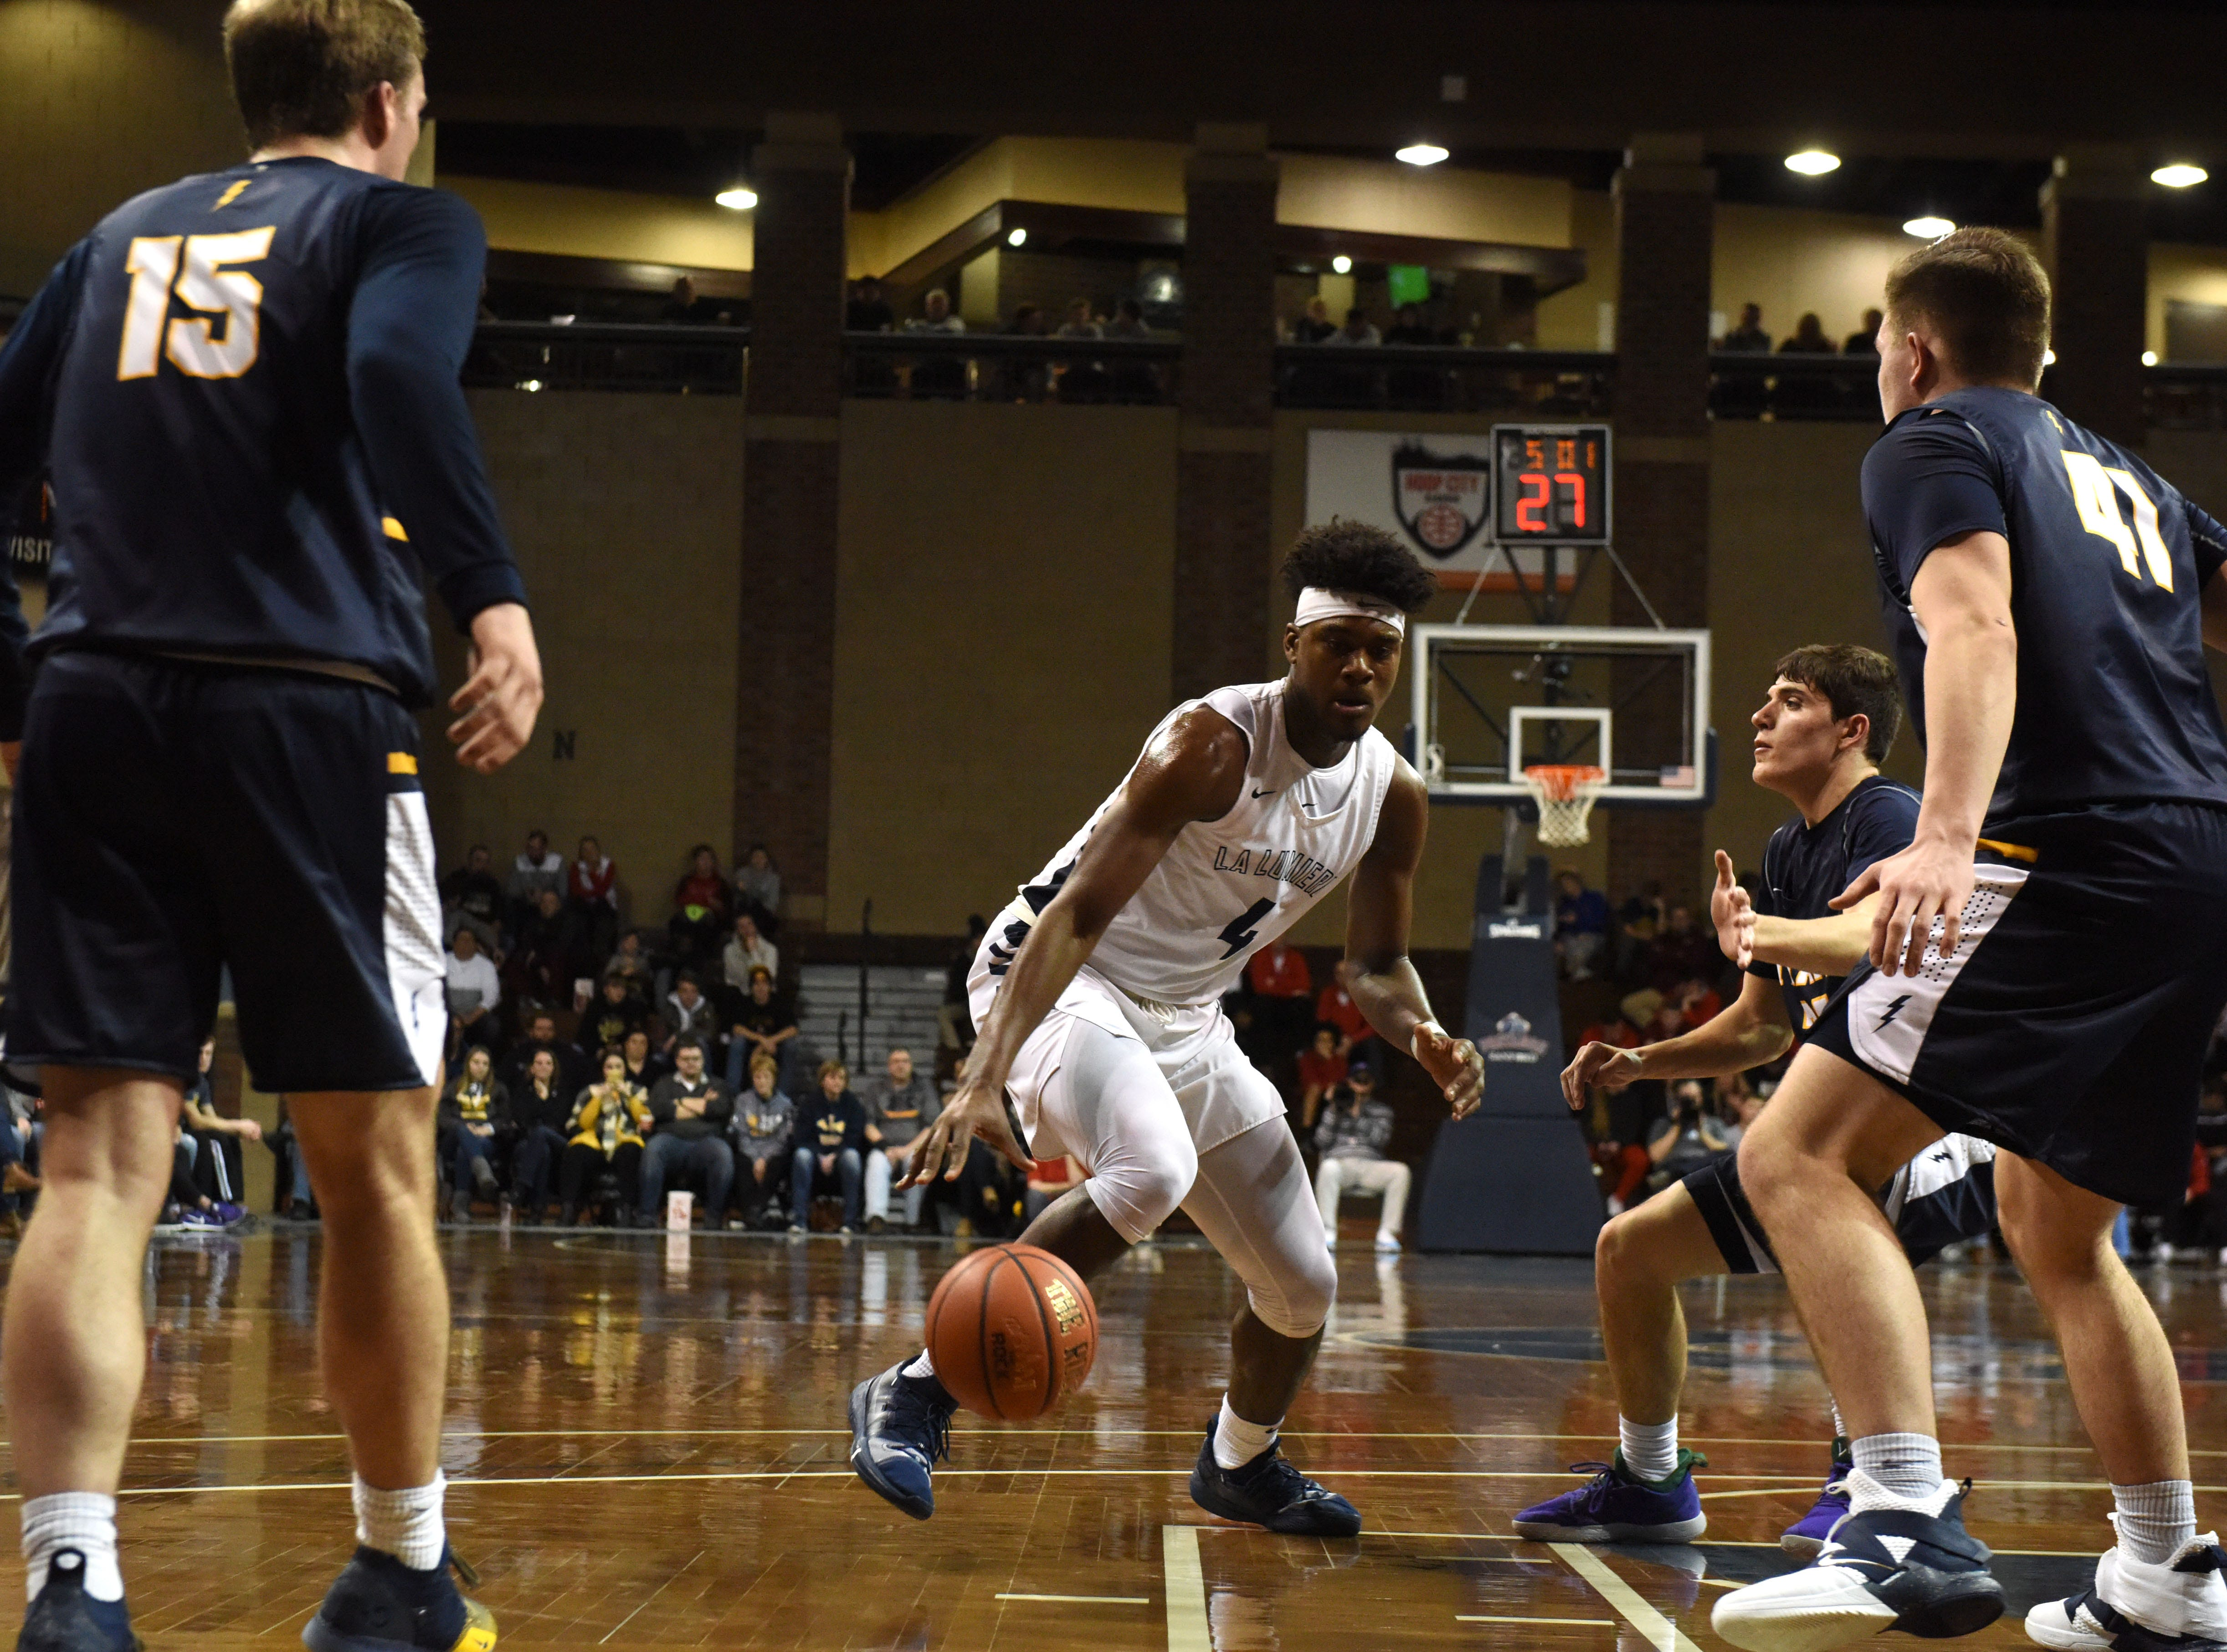 La Lumiere's Gerald Drumgoole (4) dribbles the ball during a game against Tea at the Hoop City Classic at the Sanford Pentagon in Sioux Falls, S.D., Saturday, Dec. 29, 2018.